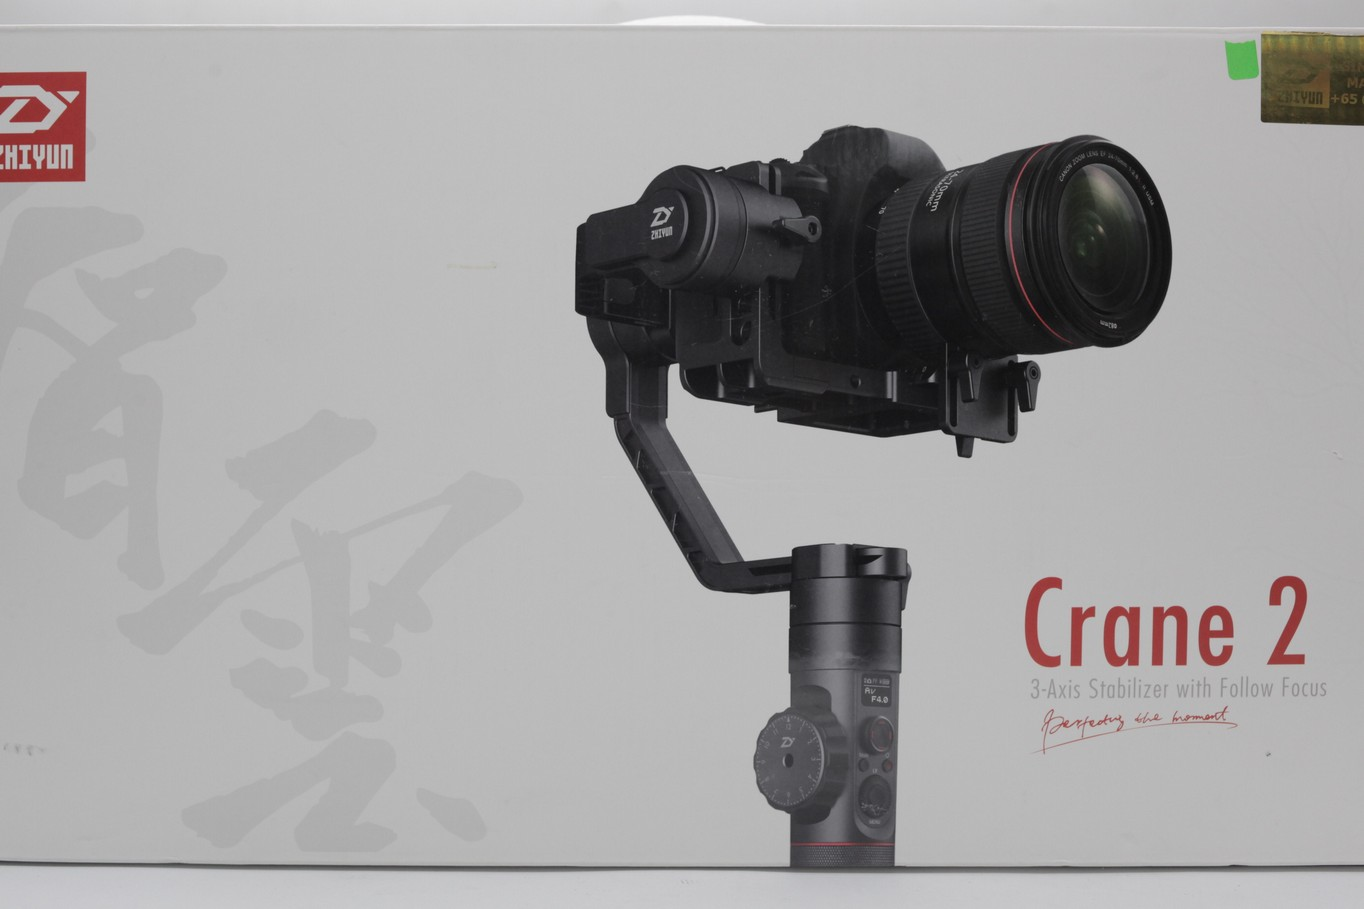 Used Zhiyun Crane 2 3 Axis Stabilizer With Follow Focus Fokus For Mirorrles Dslr